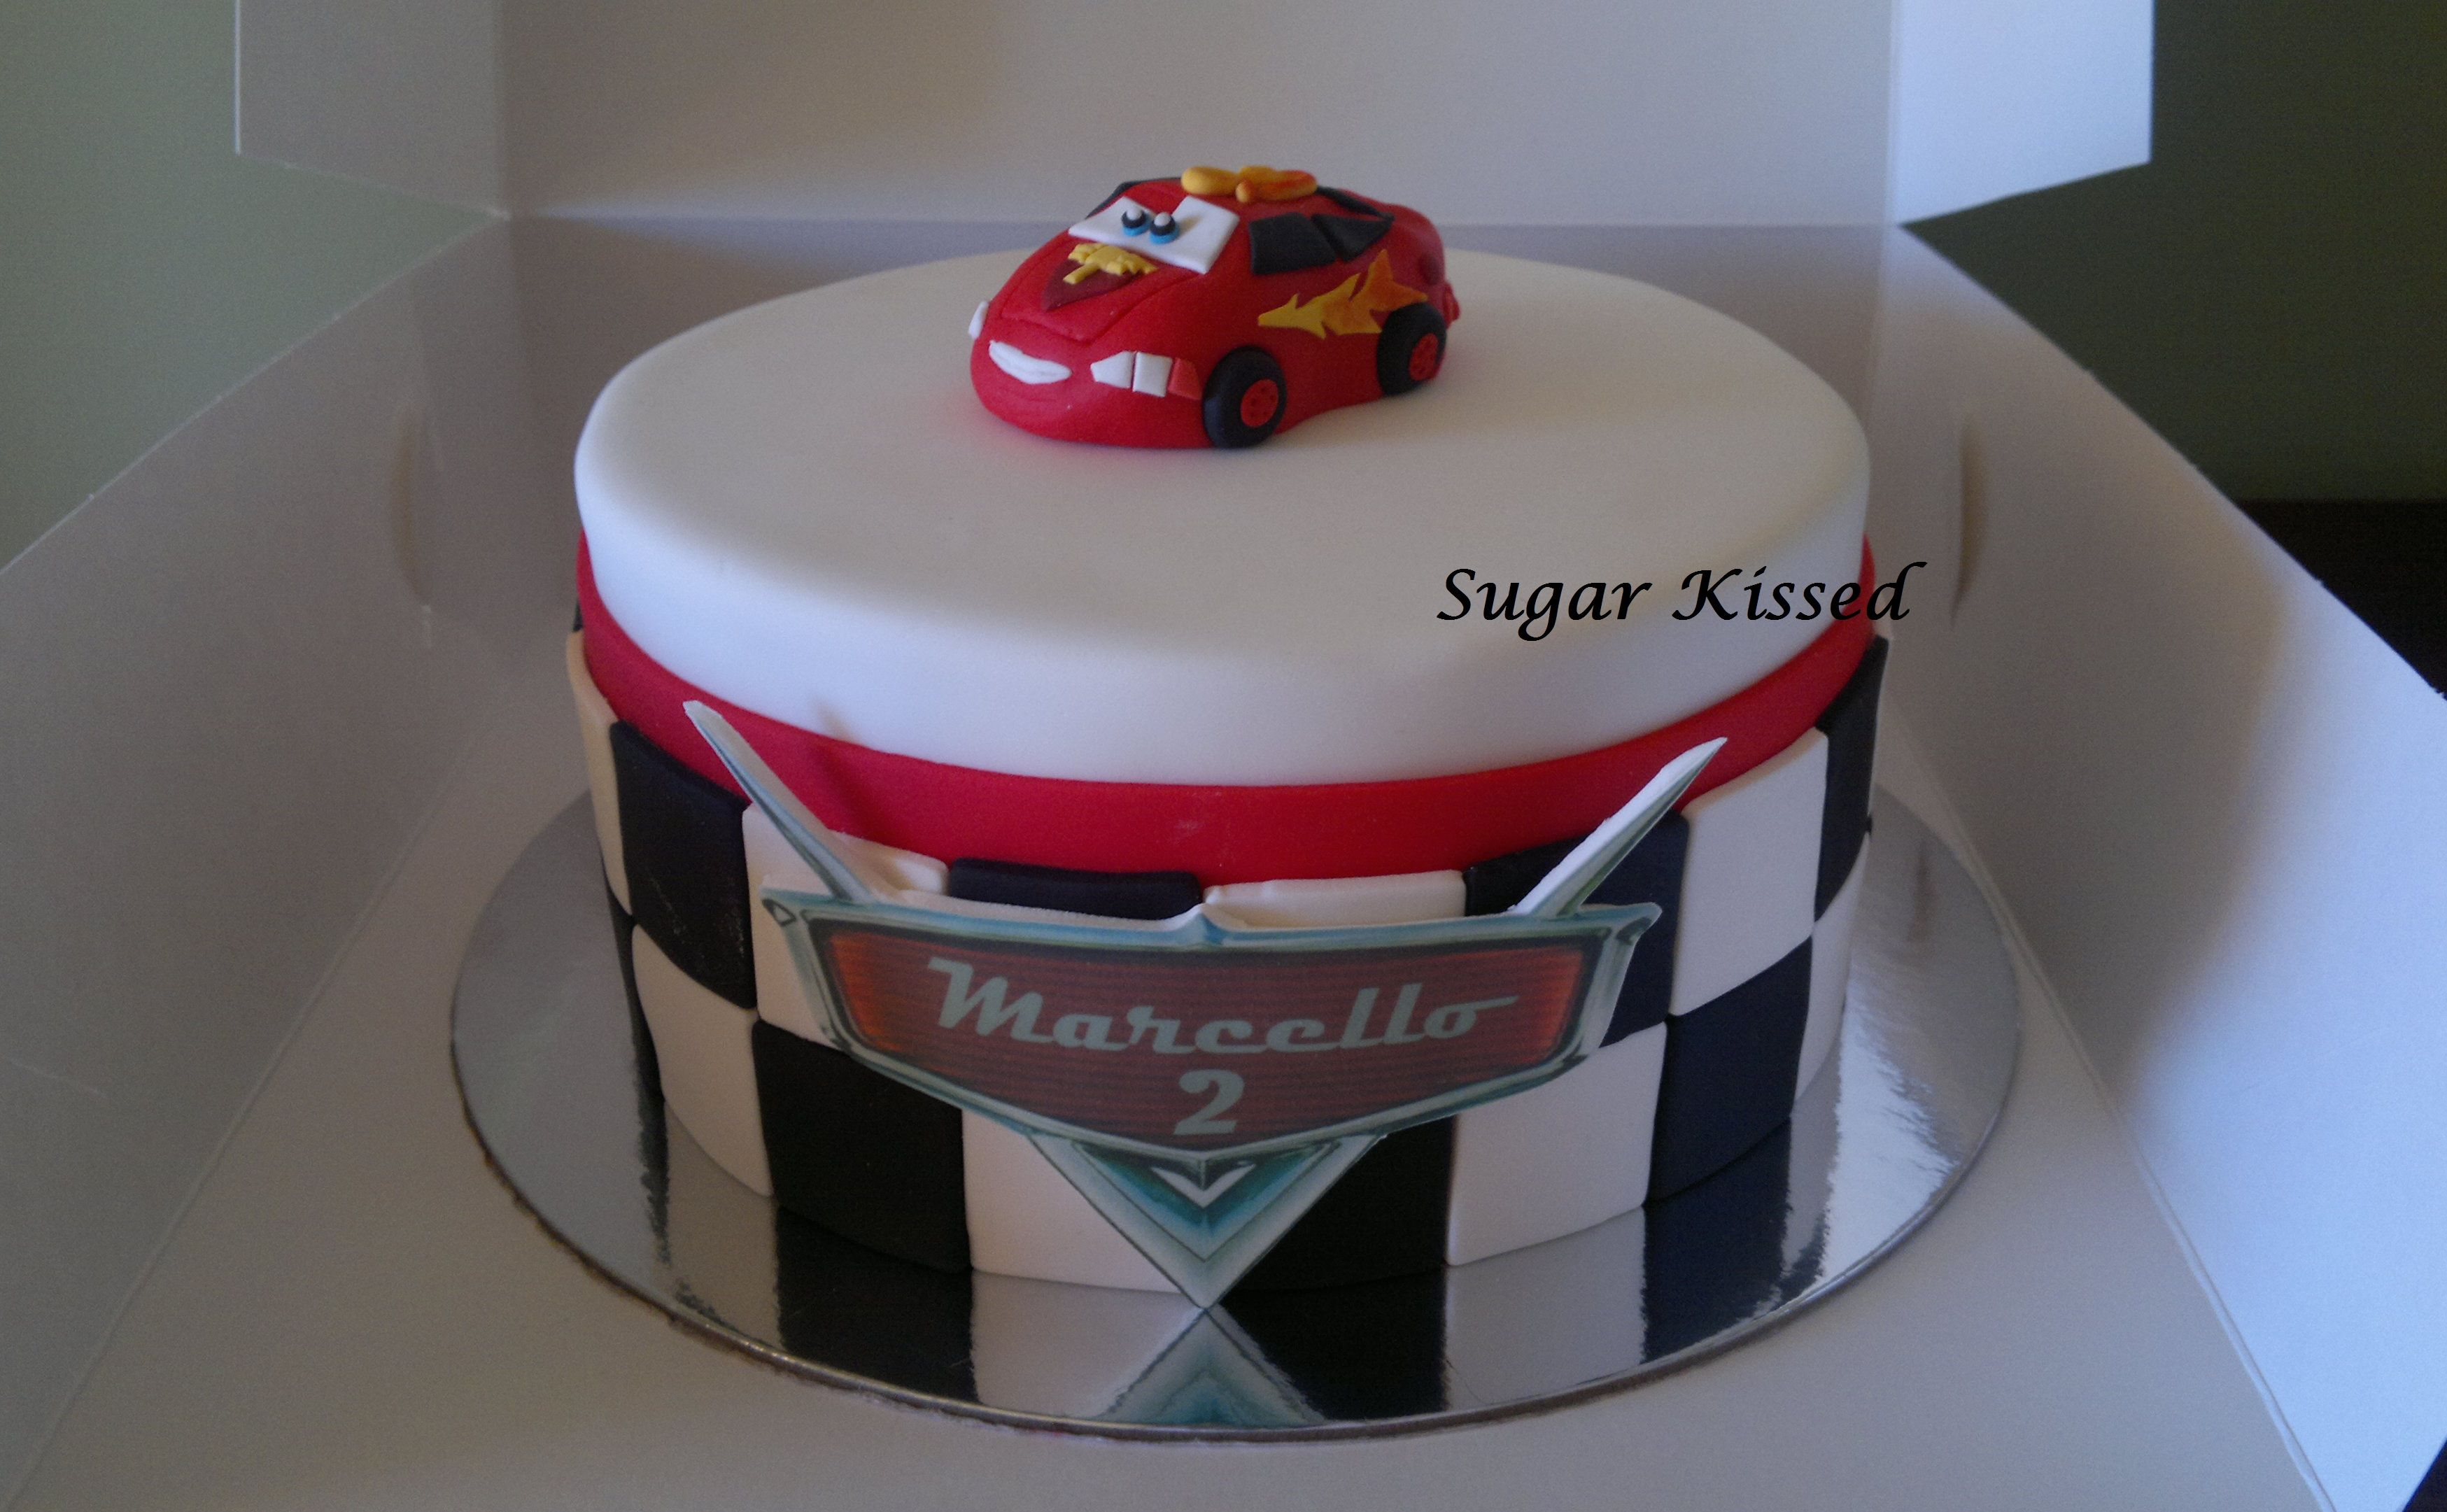 A Lightning McQueen themed cake created by Shandi Sansom from